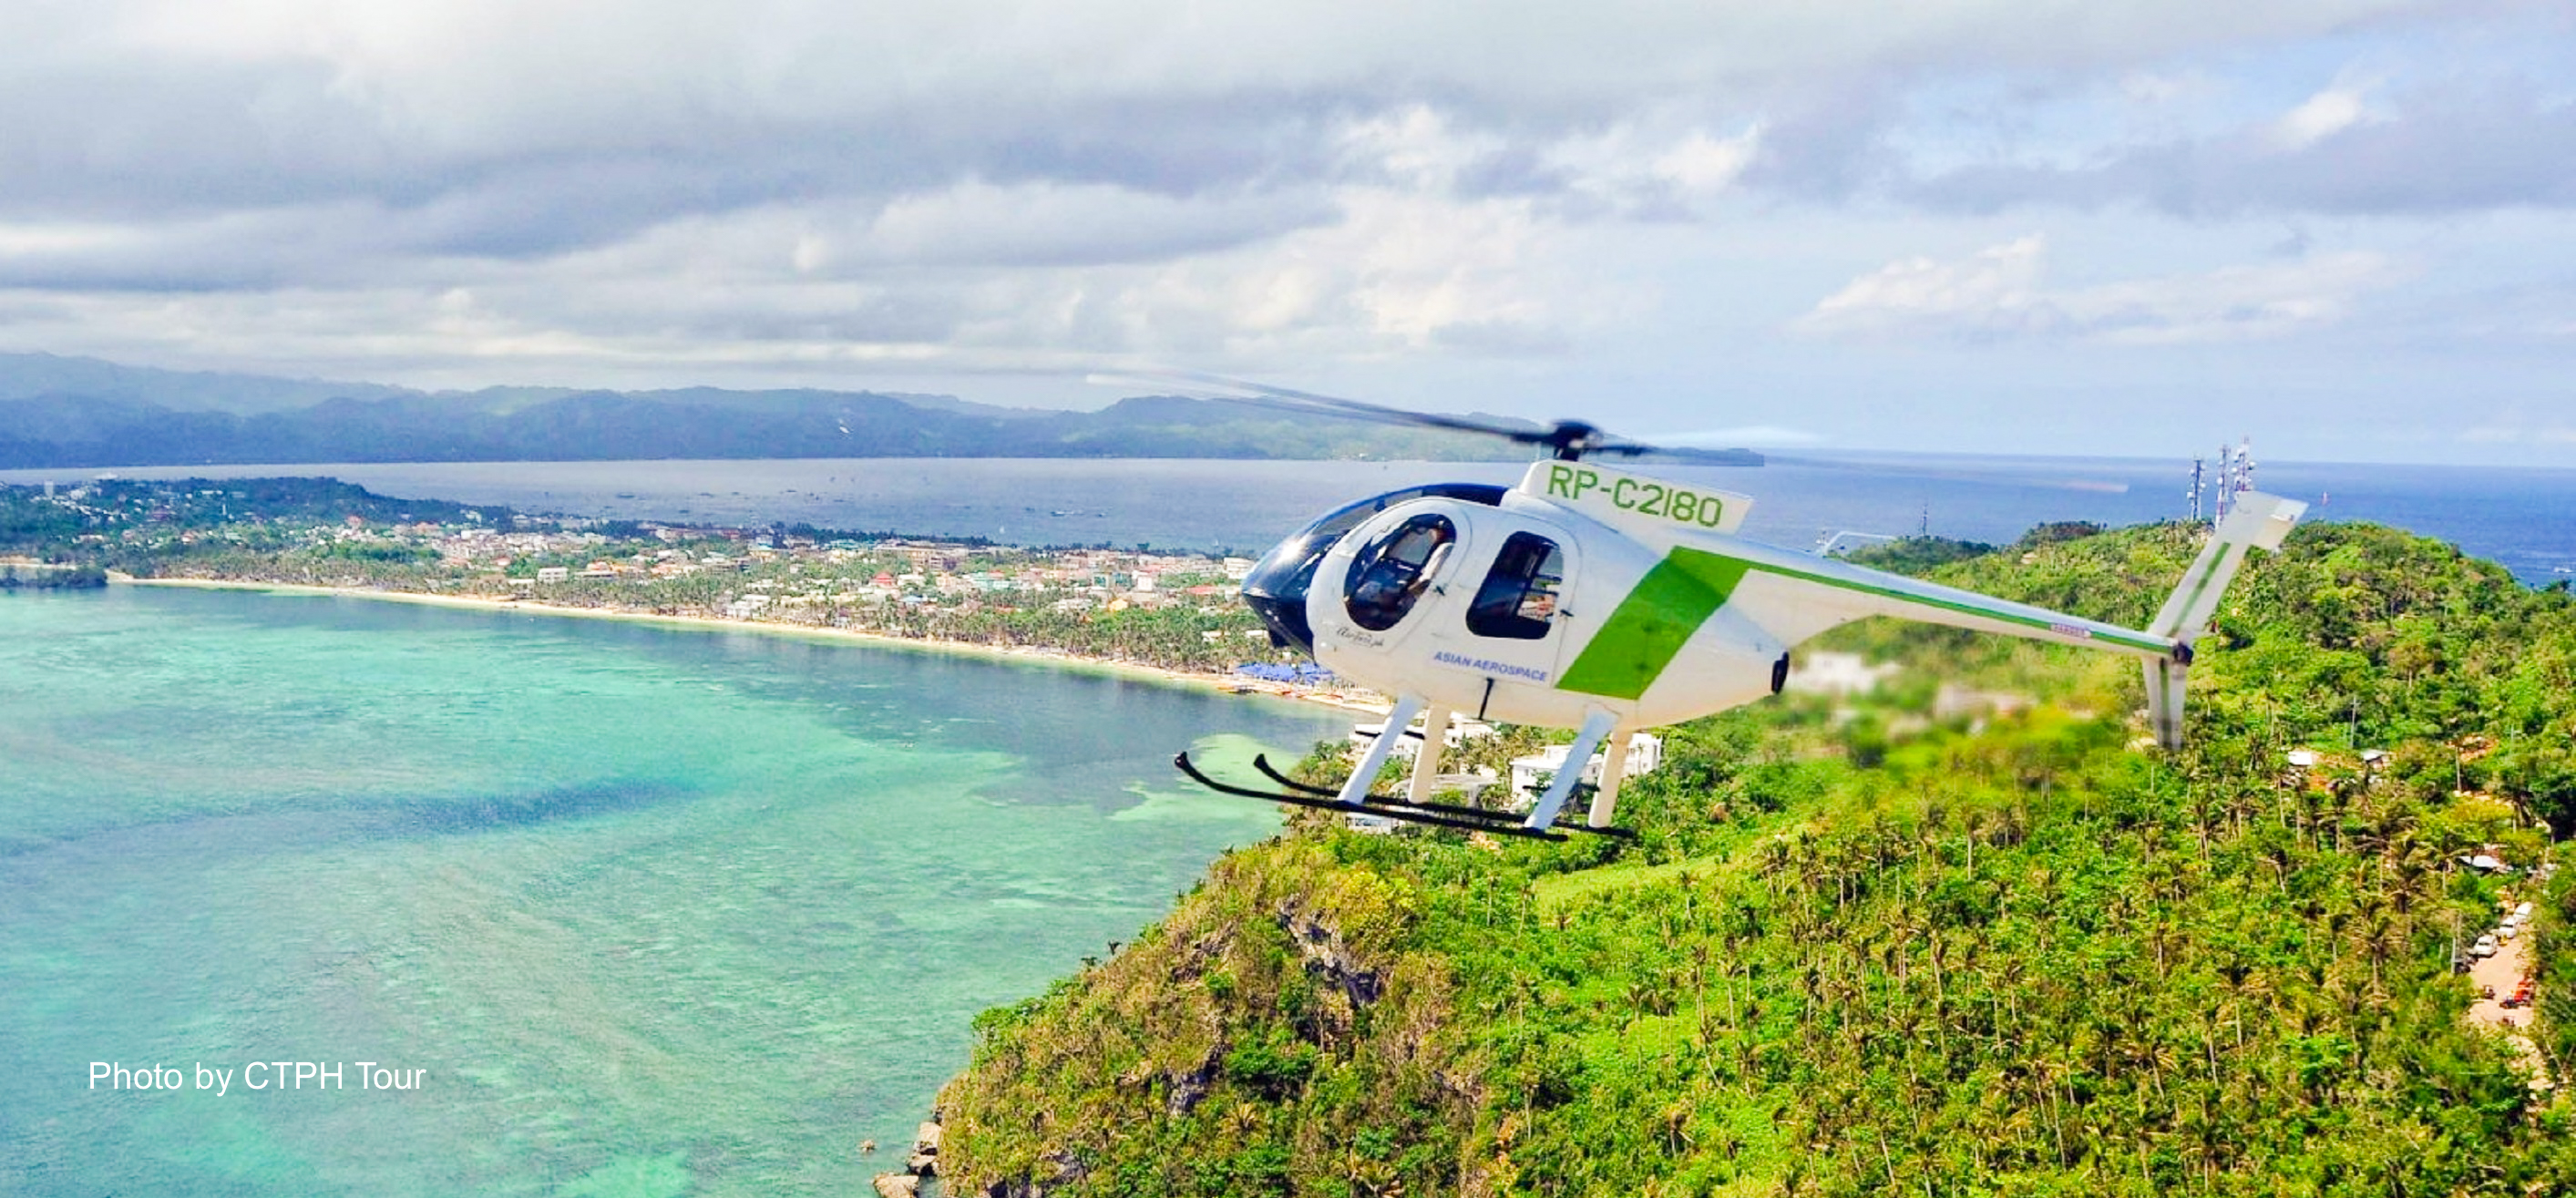 15-min Boracay Helicopter Tour with Hotel Transfers